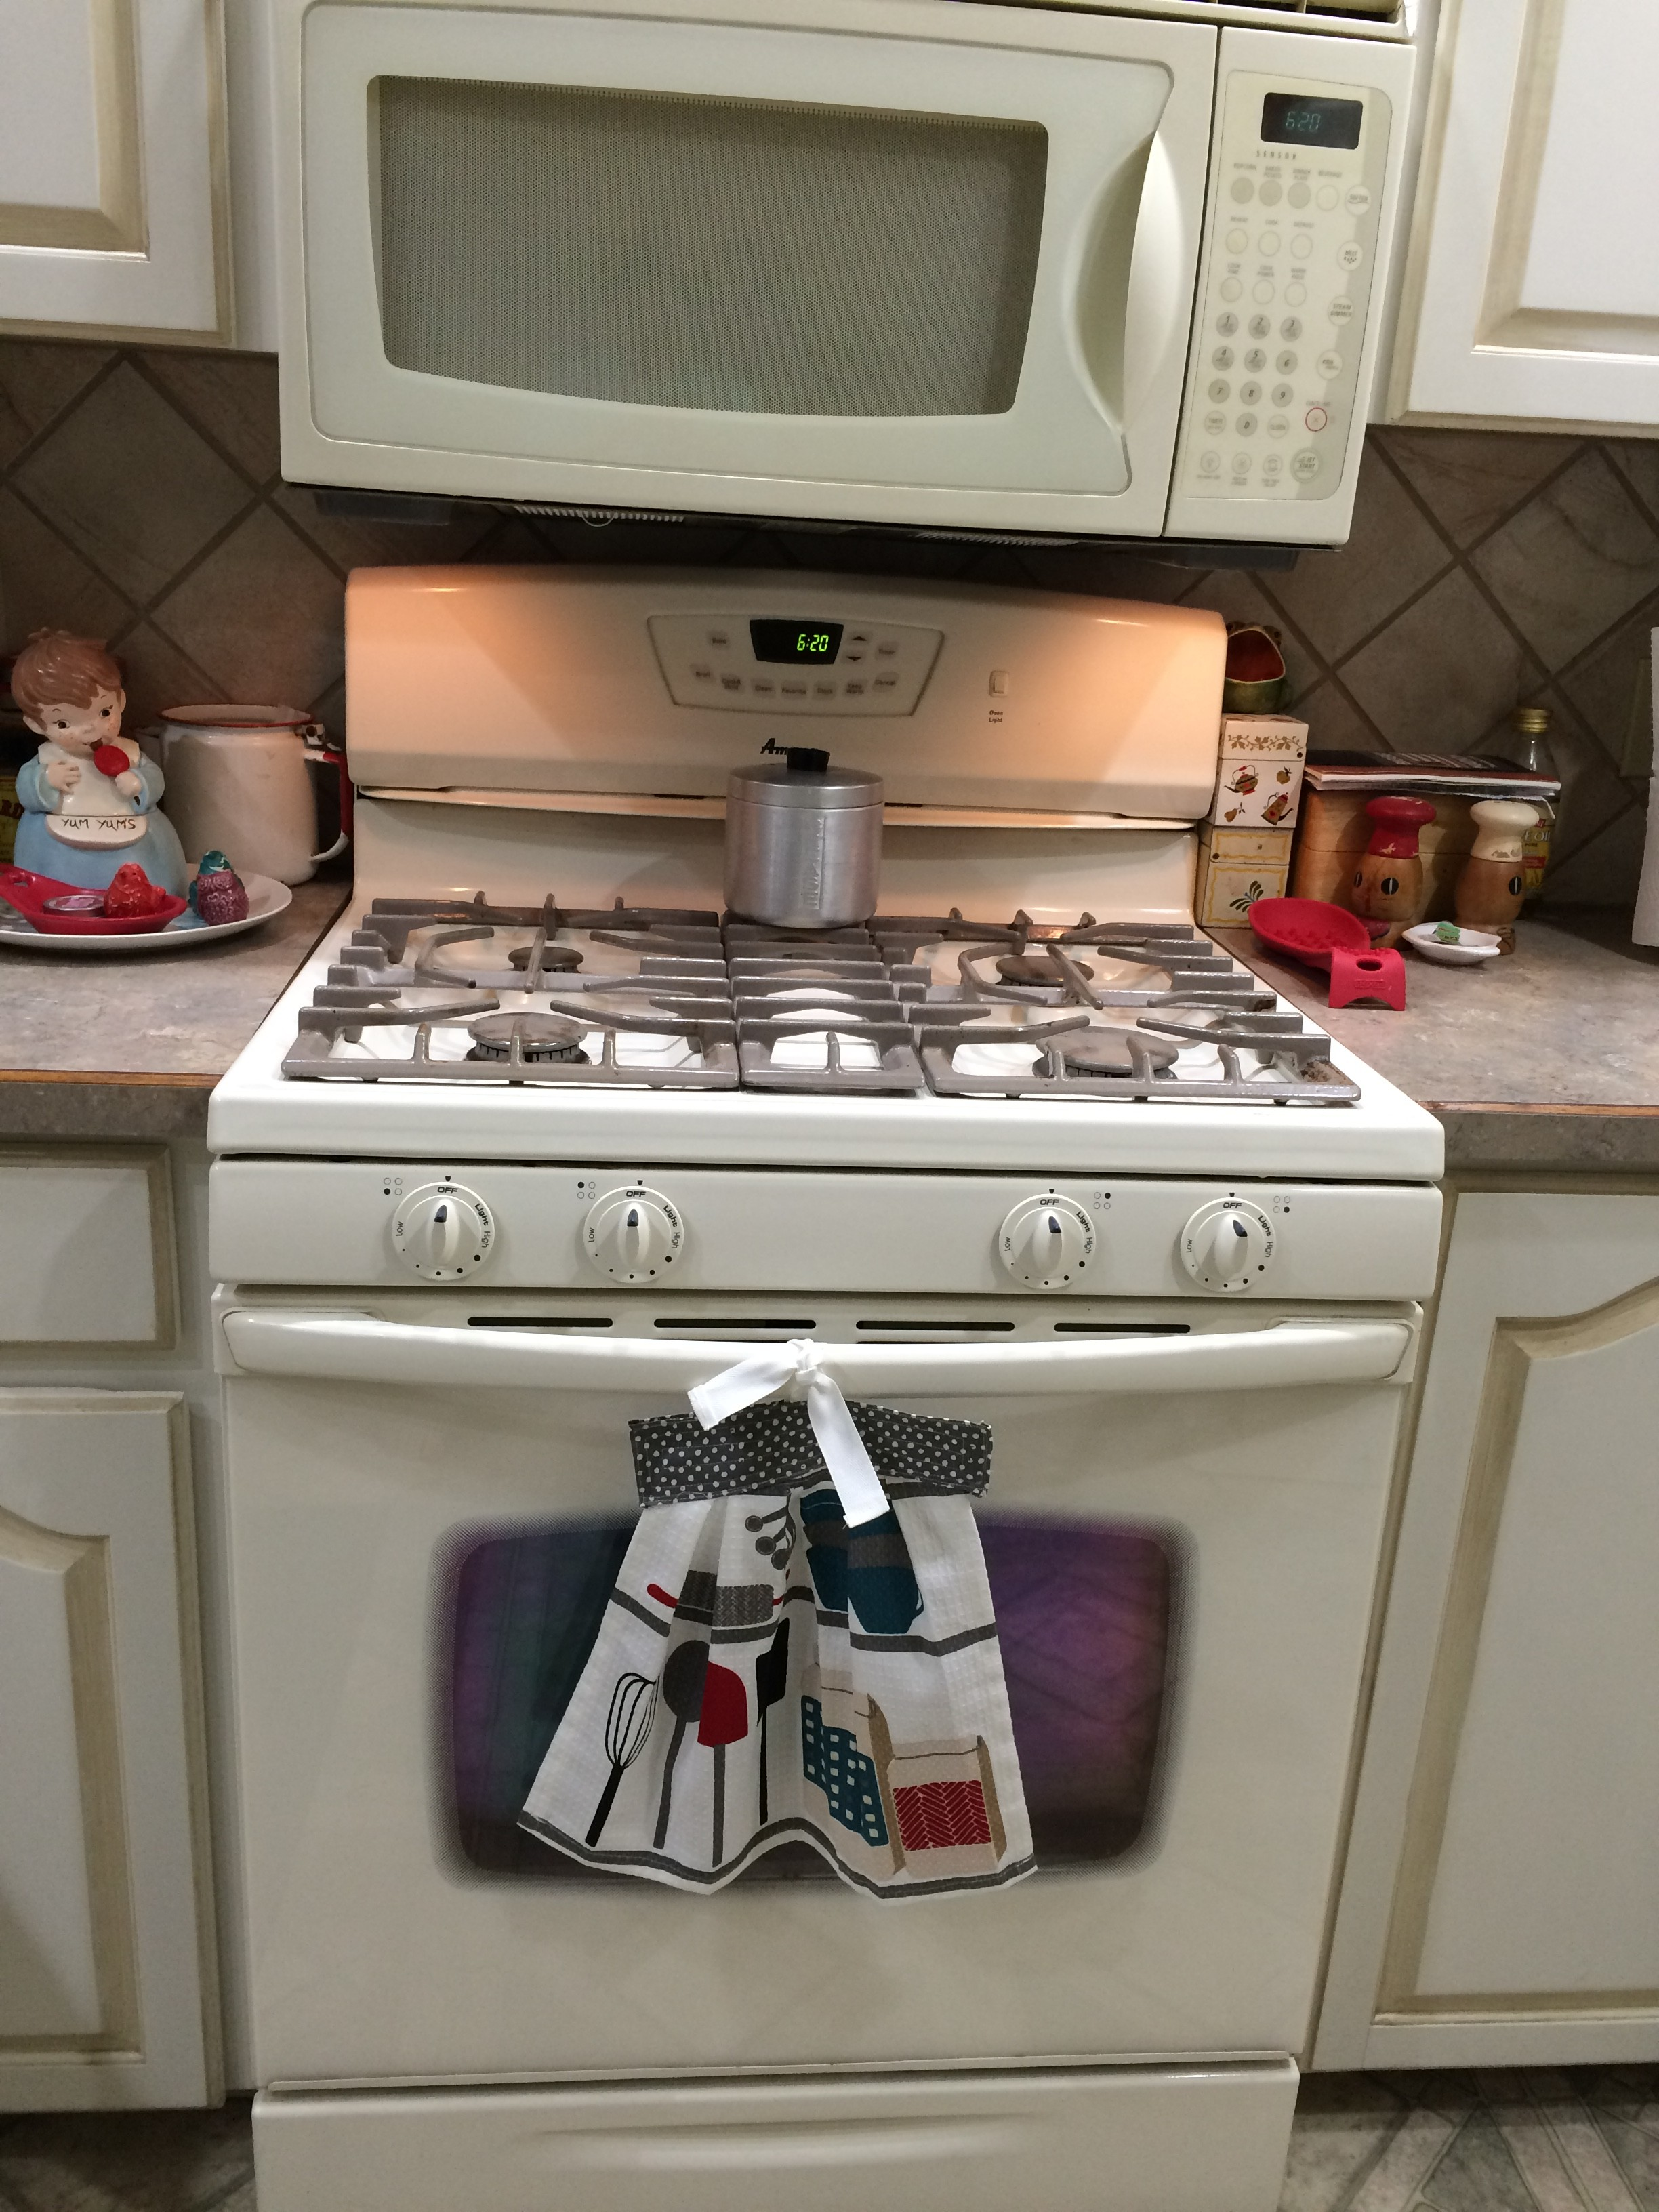 Kitchen towel hanging ideas - Kitchen Towel Hanging Ideas If Using A Non Directional Print You Should Be Able To